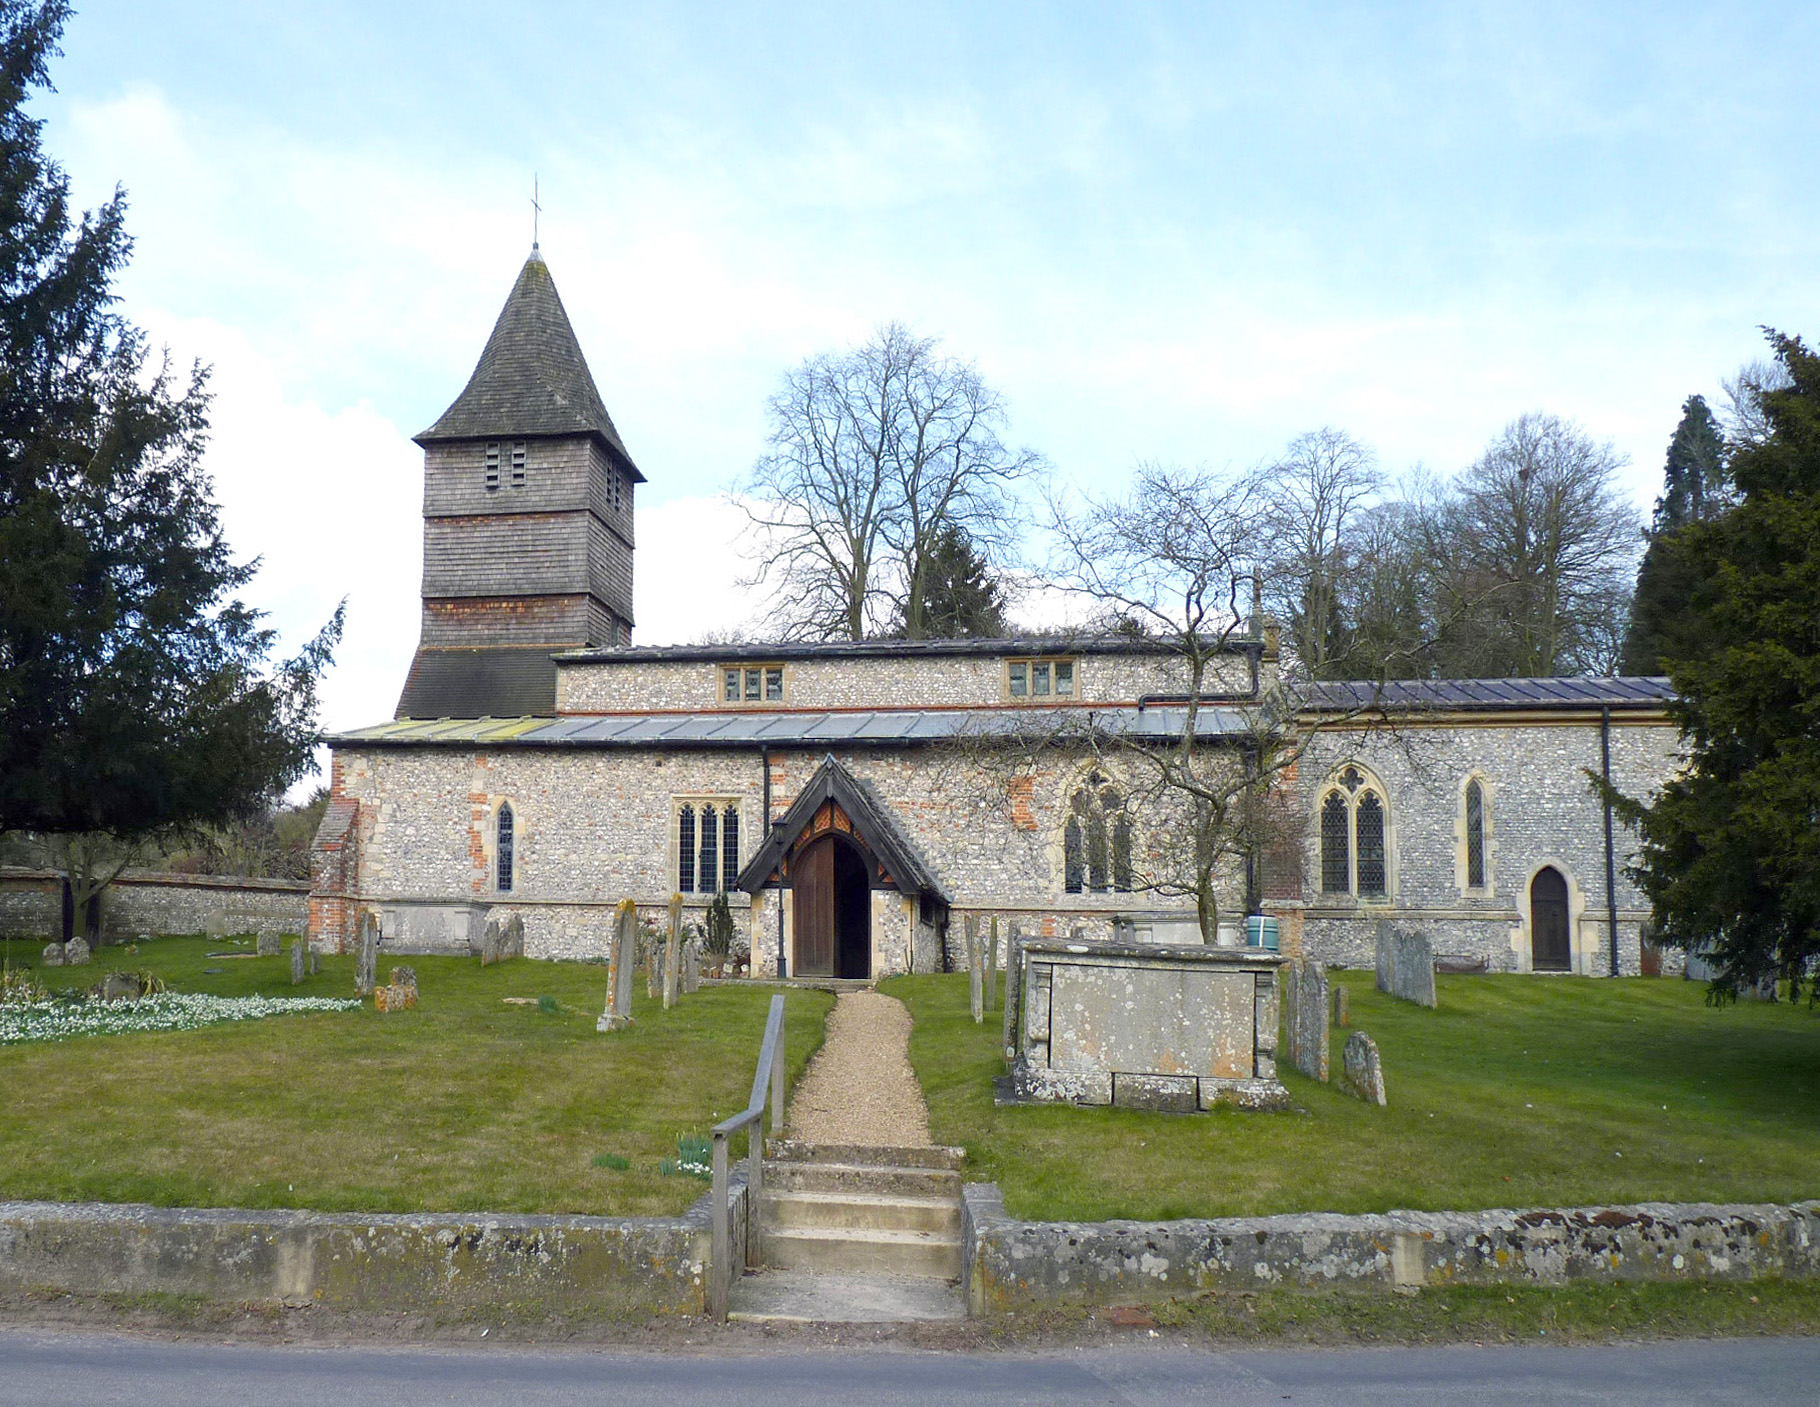 St. Peter's Church, Hurstbourne Tarrant